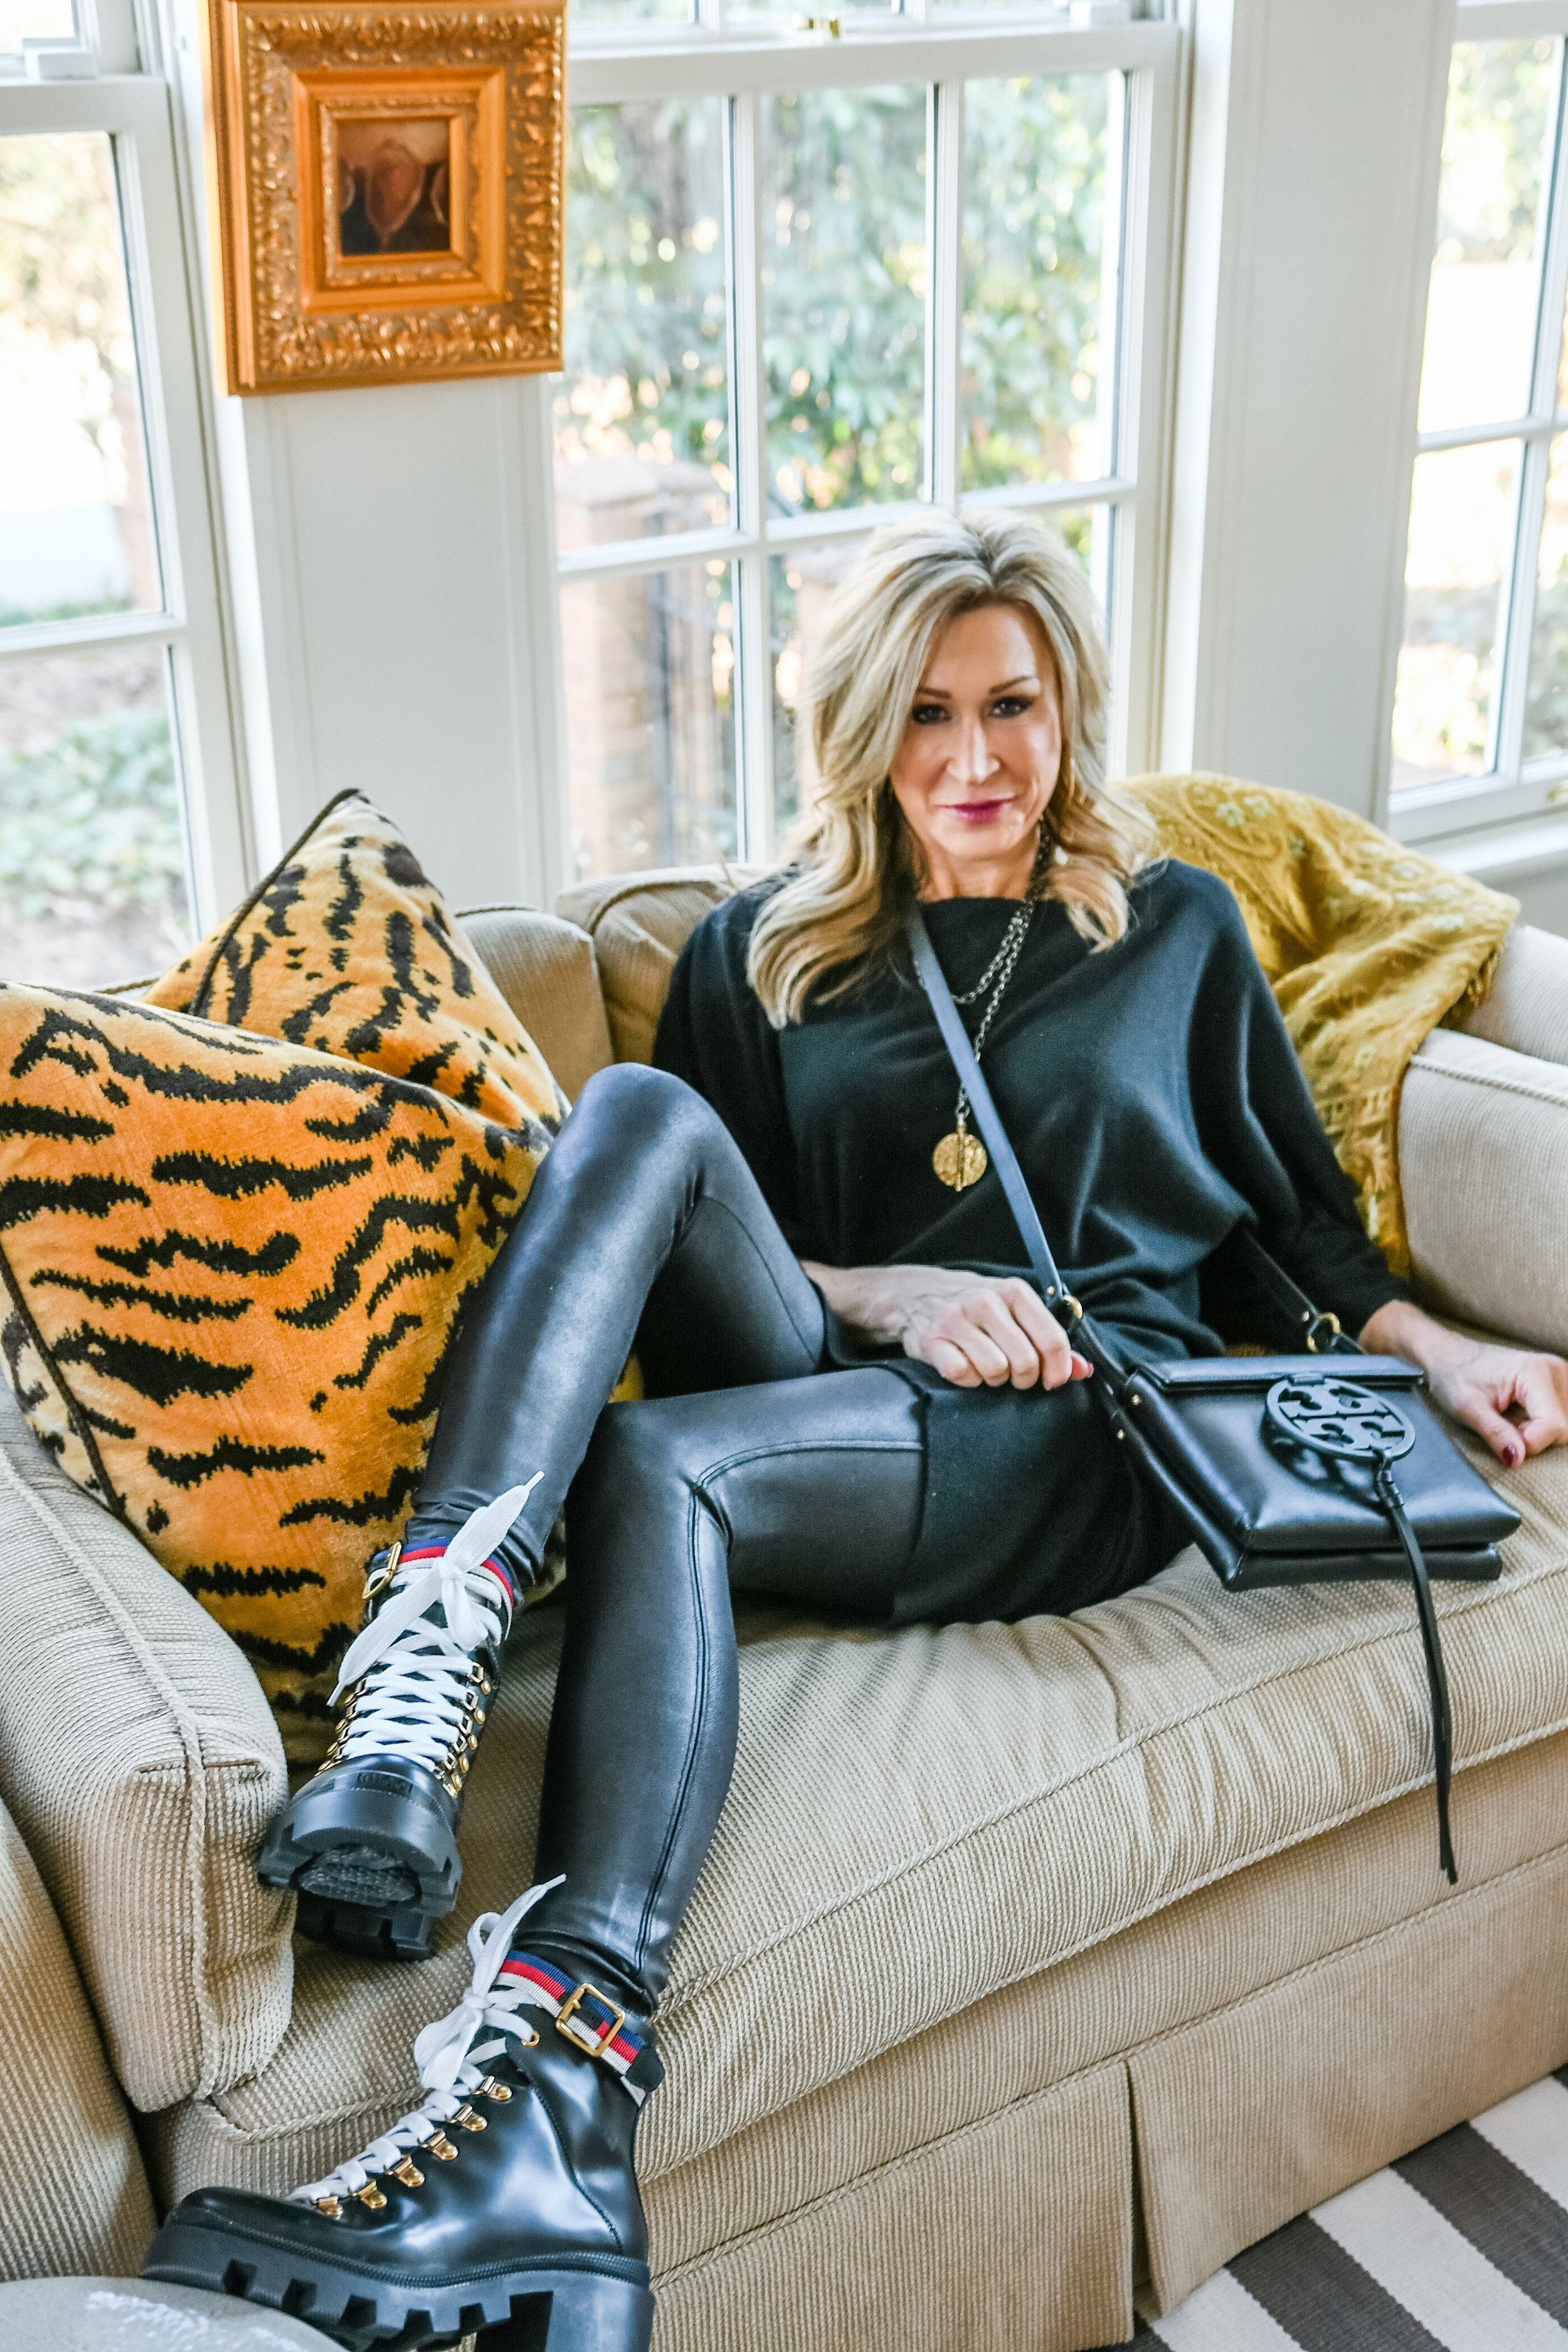 Spanx Moto Leggings with Combat Boots - Crazy Blonde Life